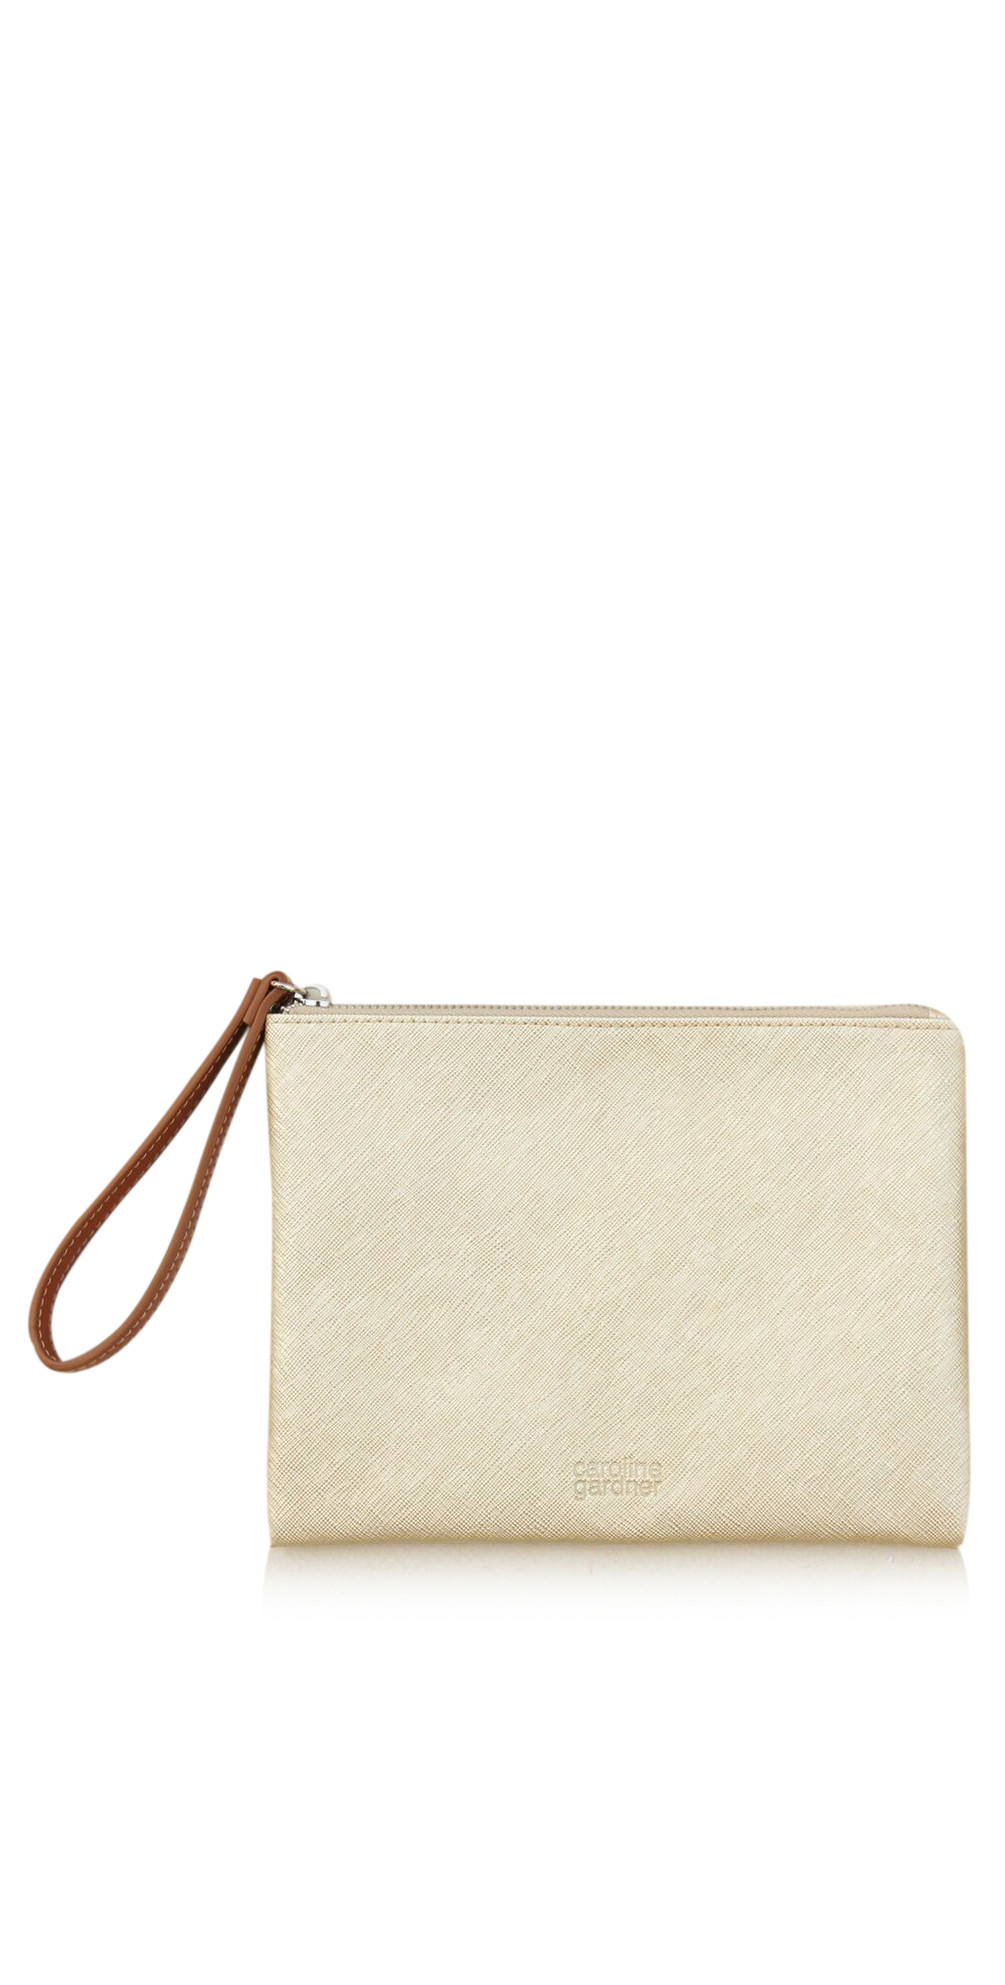 enjoy discount price save off top-rated official Gold Metallic Gold Wristlet Clutch Bag